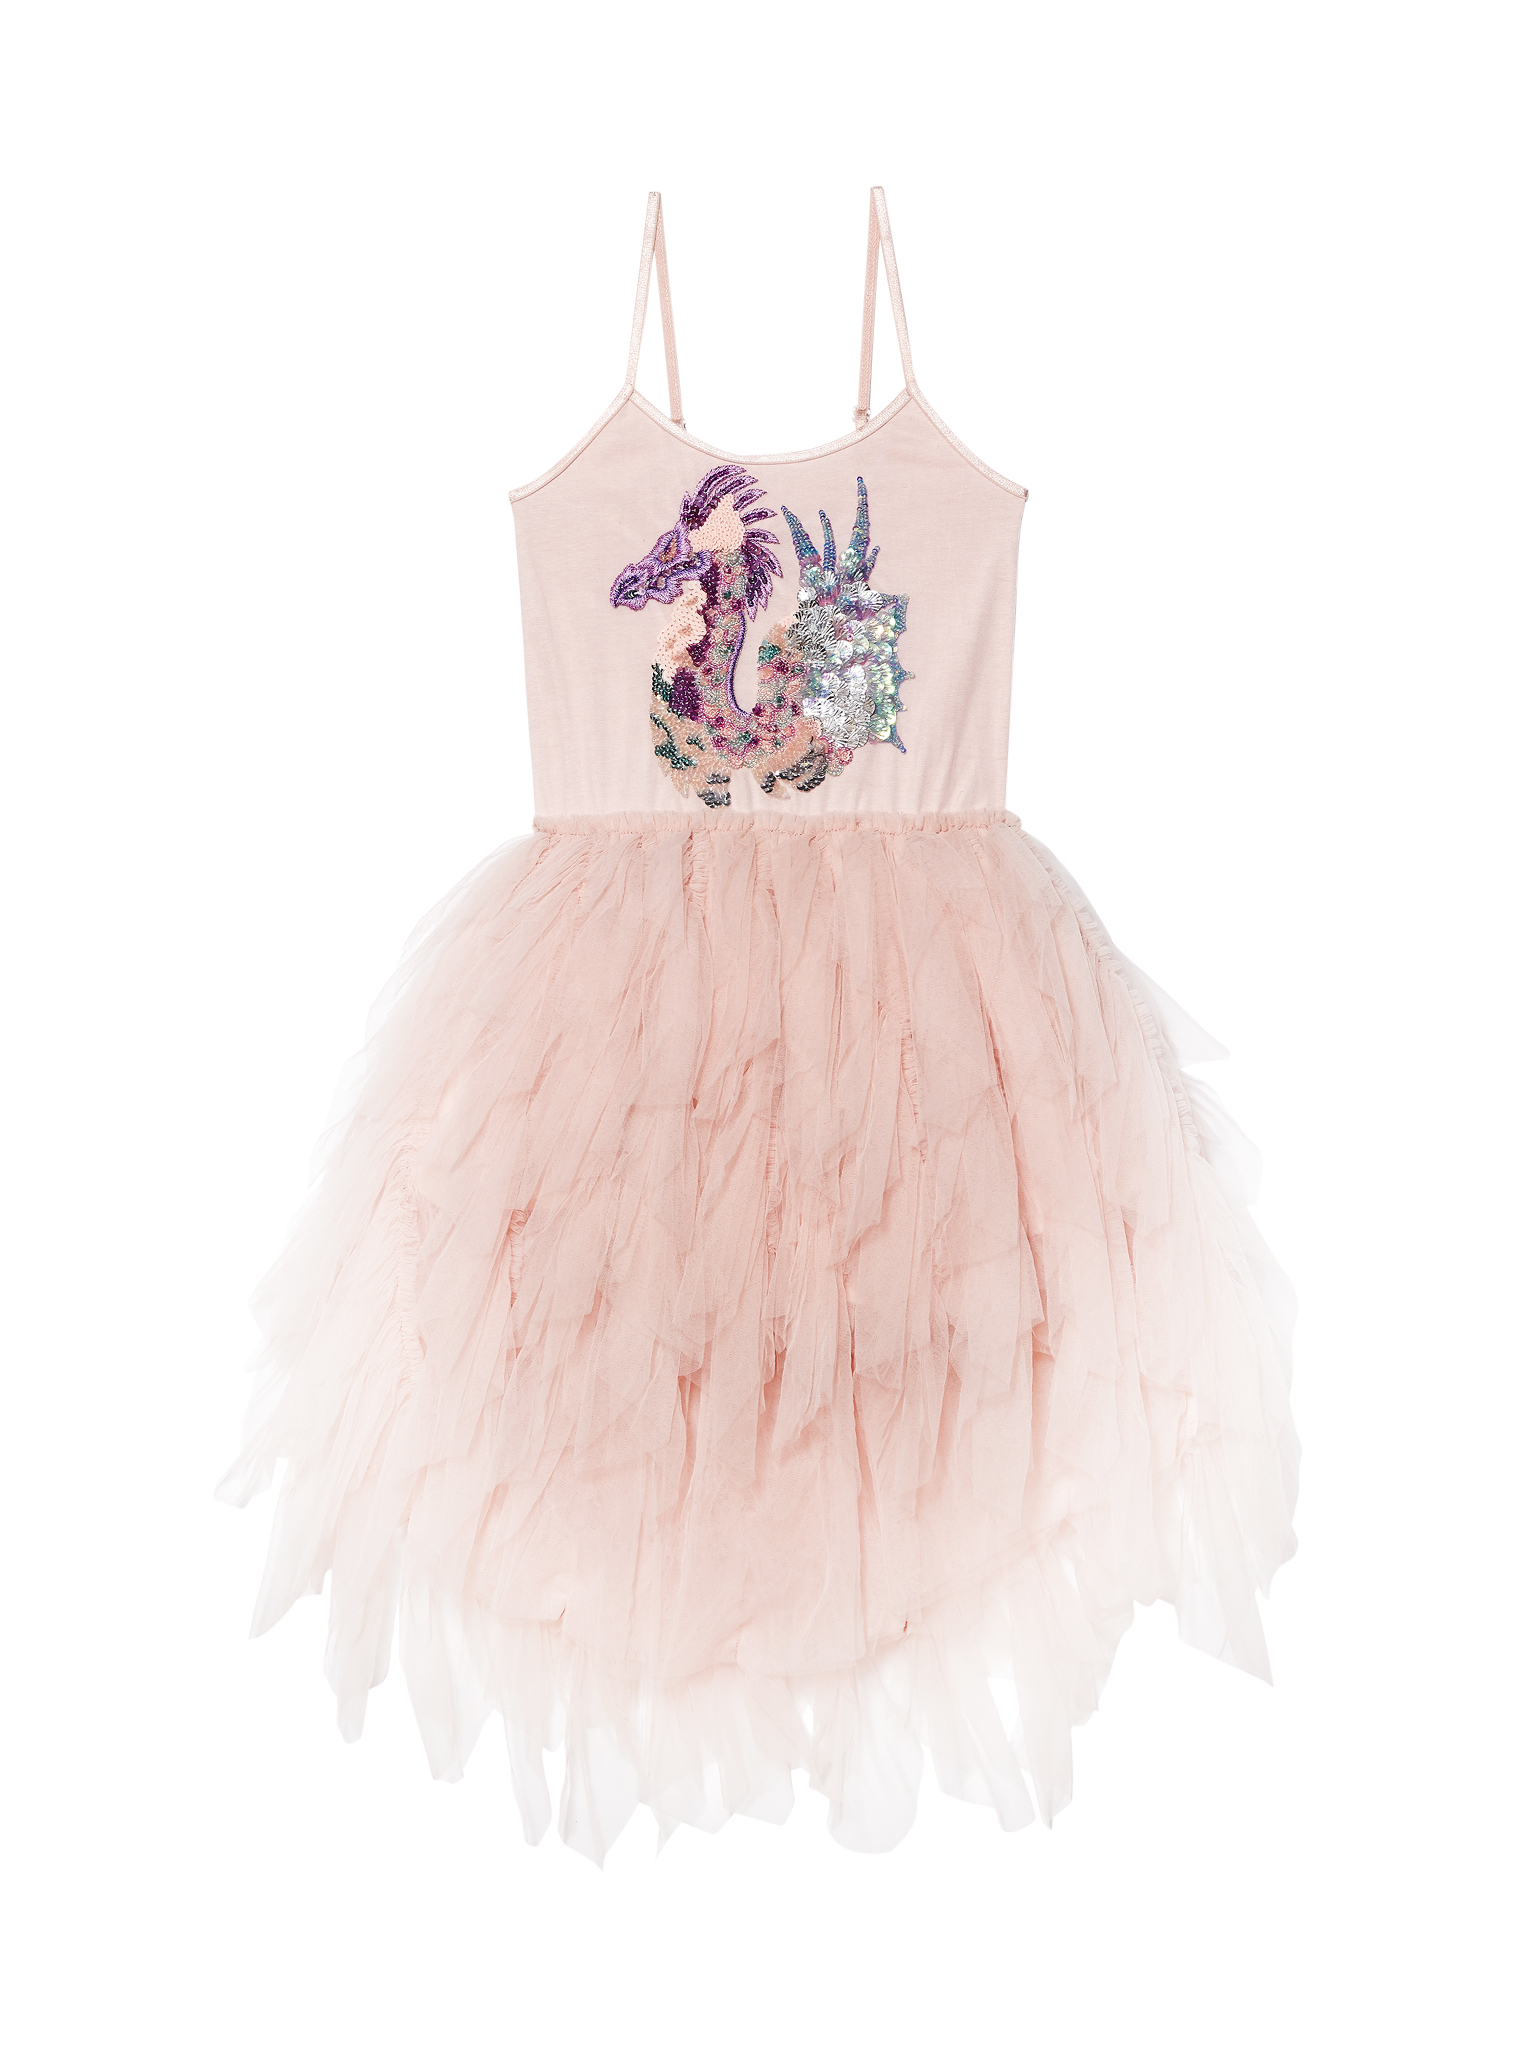 Tdm4310 splashing sea dragon tutu dress 01